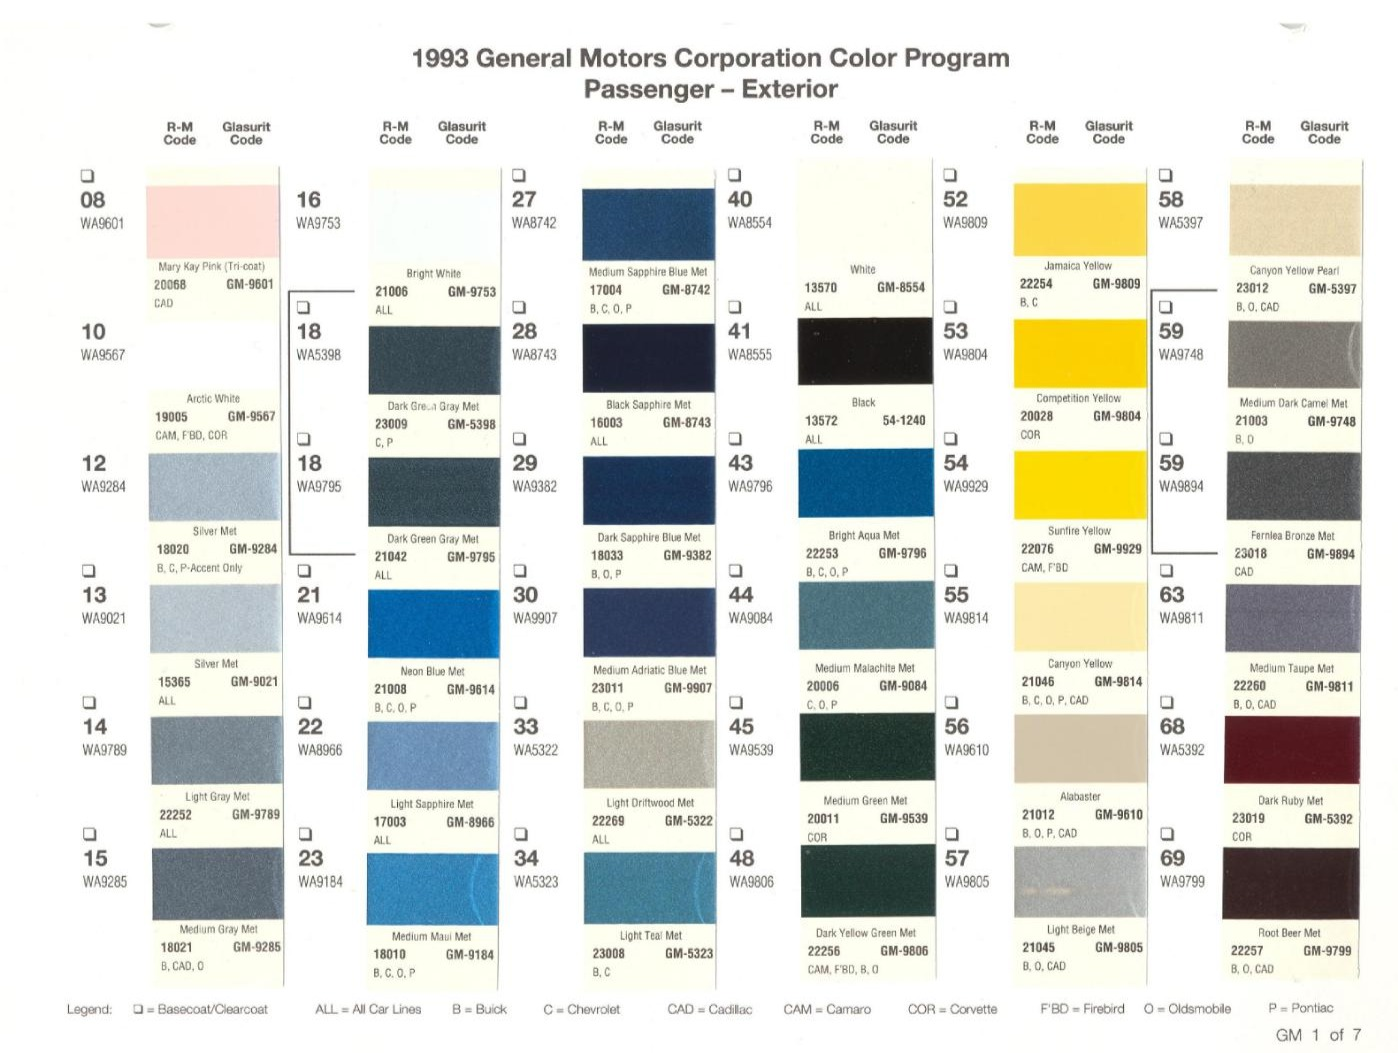 Colors and Color Codes used on General Motors in 1993